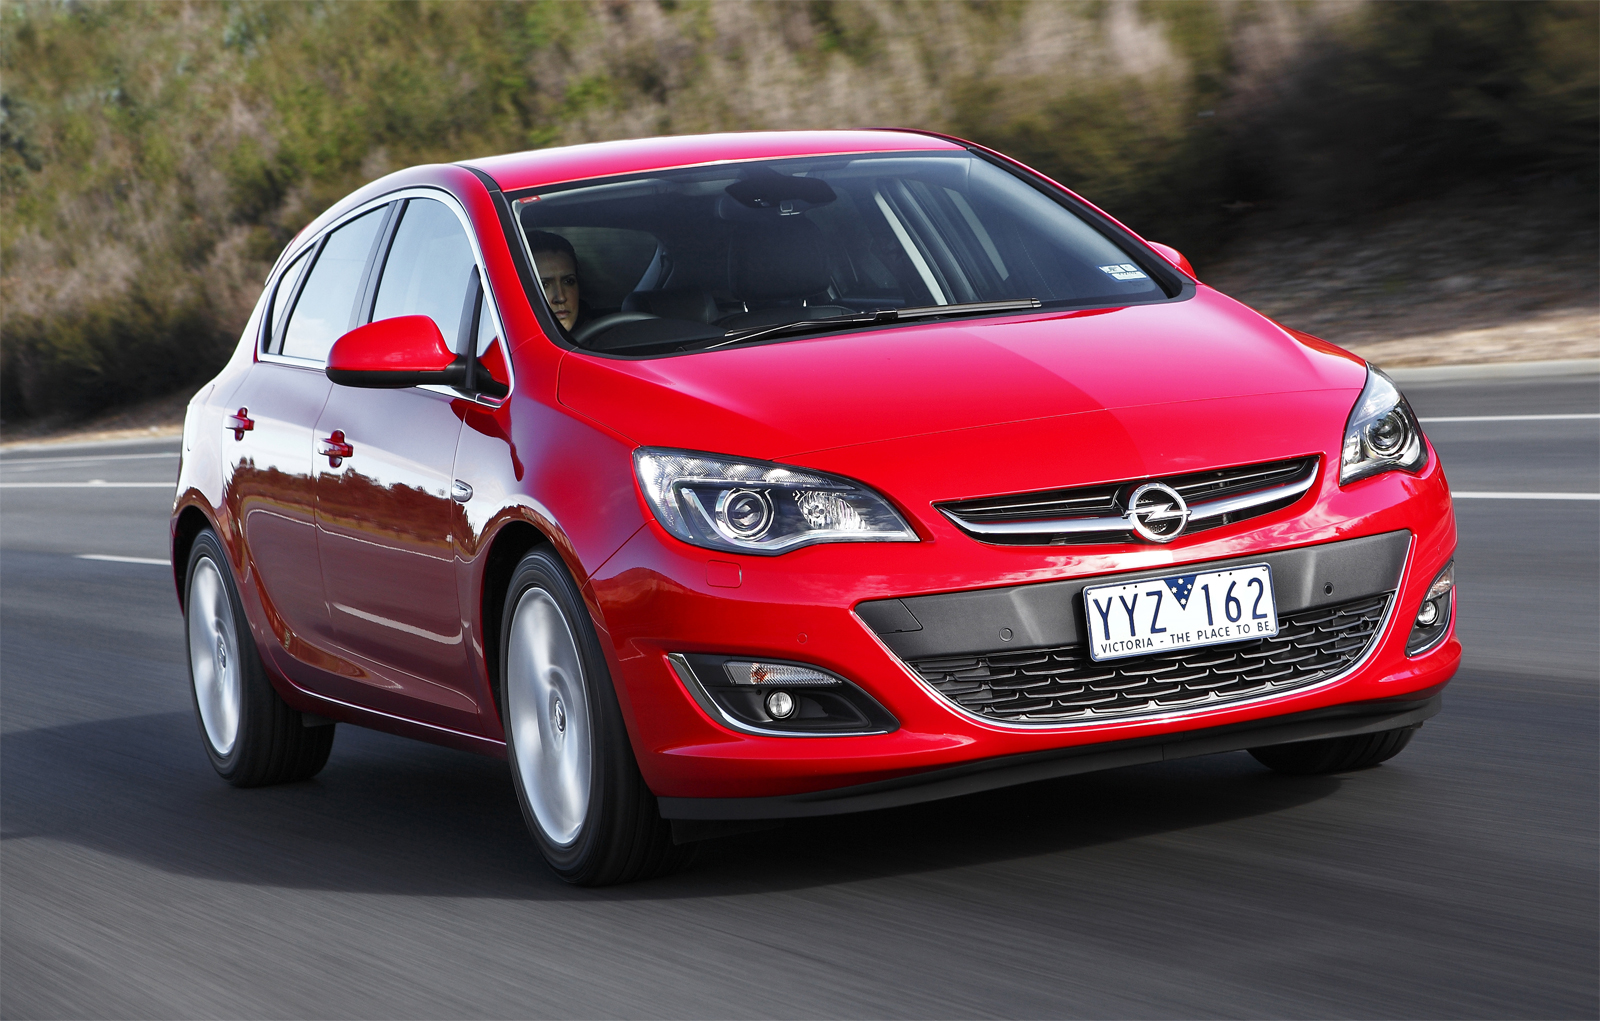 2013 Opel Astra Hatch And Tourer, Astra GTC On Sale In Australia